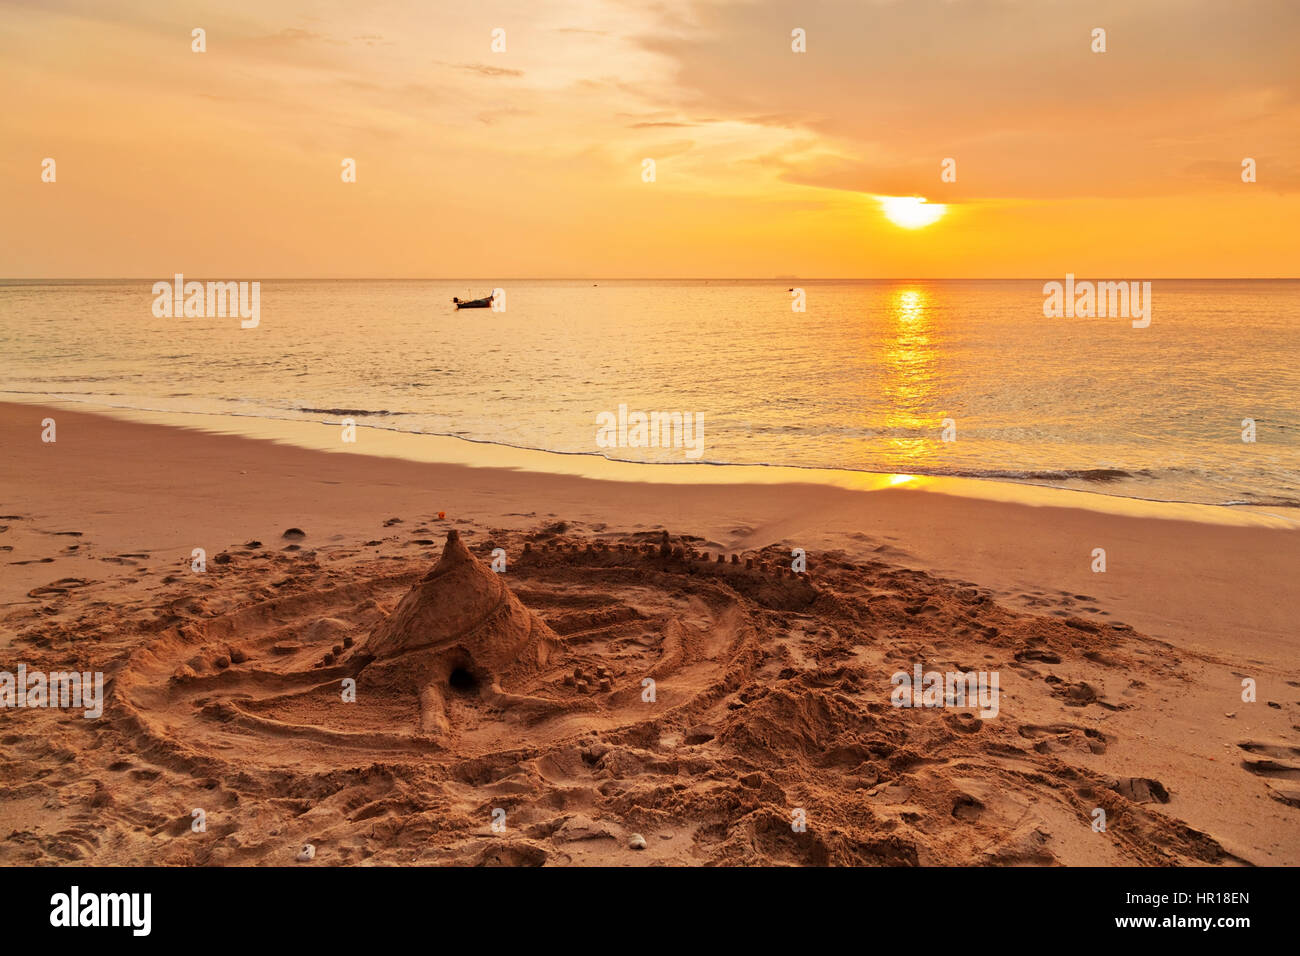 Sand castle on the beach at sunset